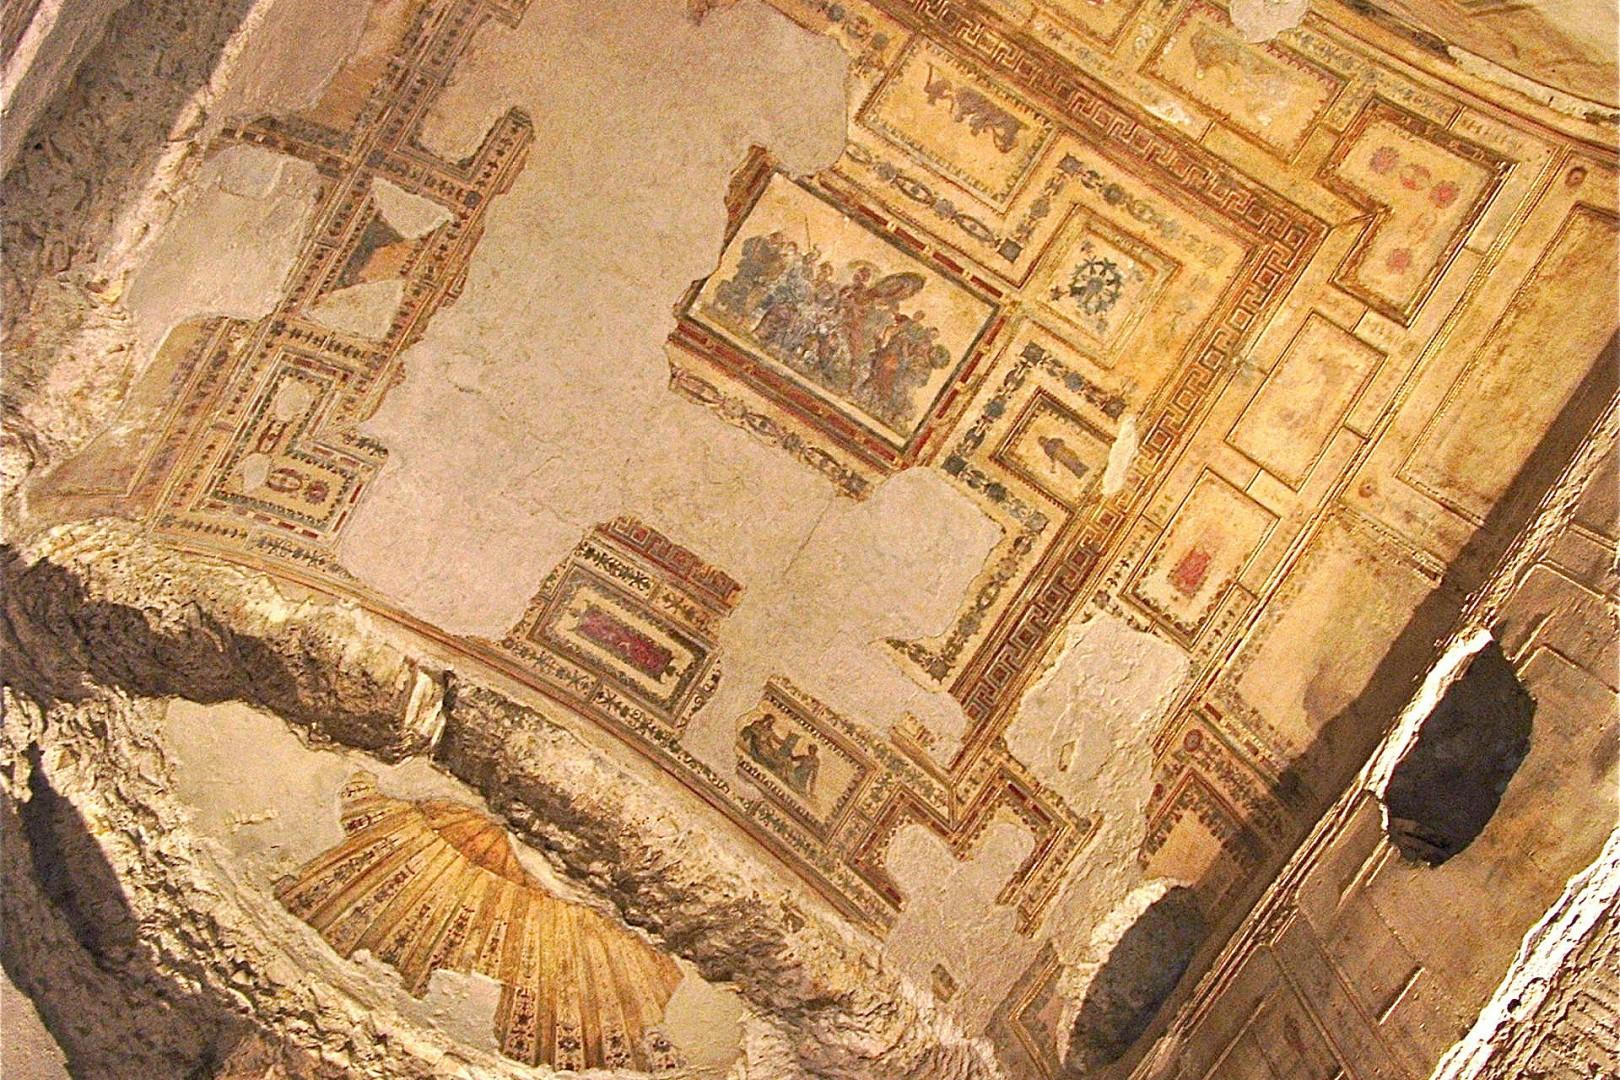 Reserve way in advance to enter in the Domus Aurea, the Golden House of Nero.